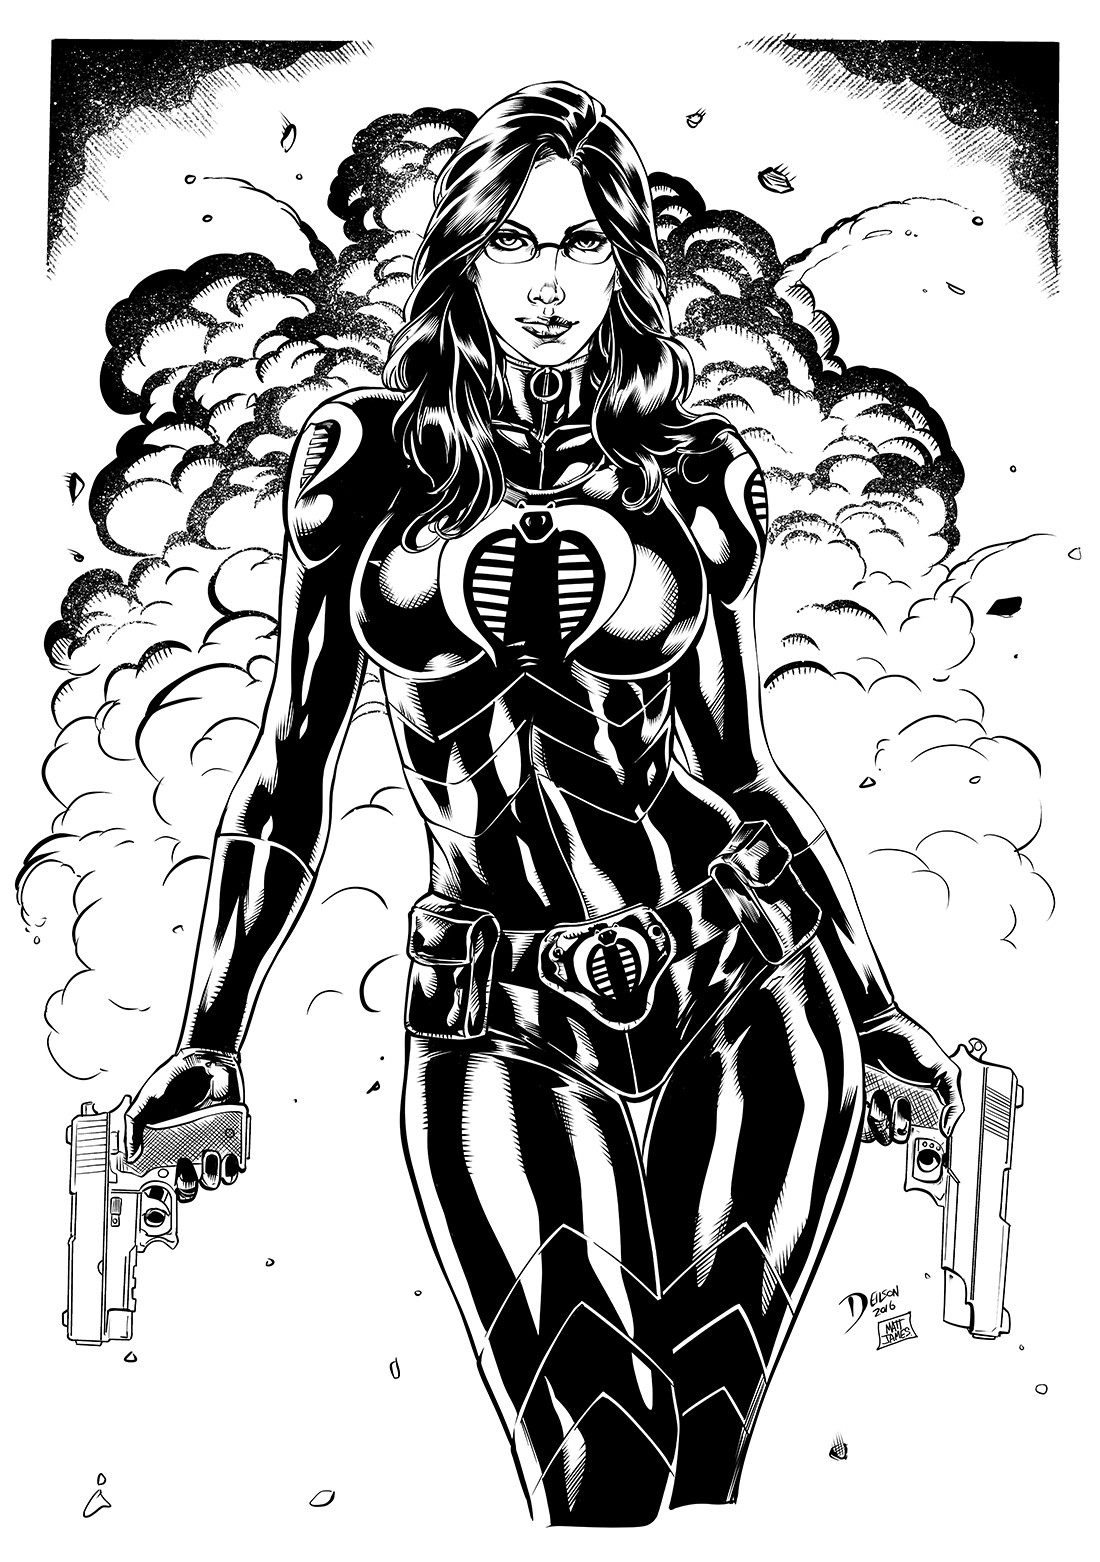 Matt james baroness by deilson lr